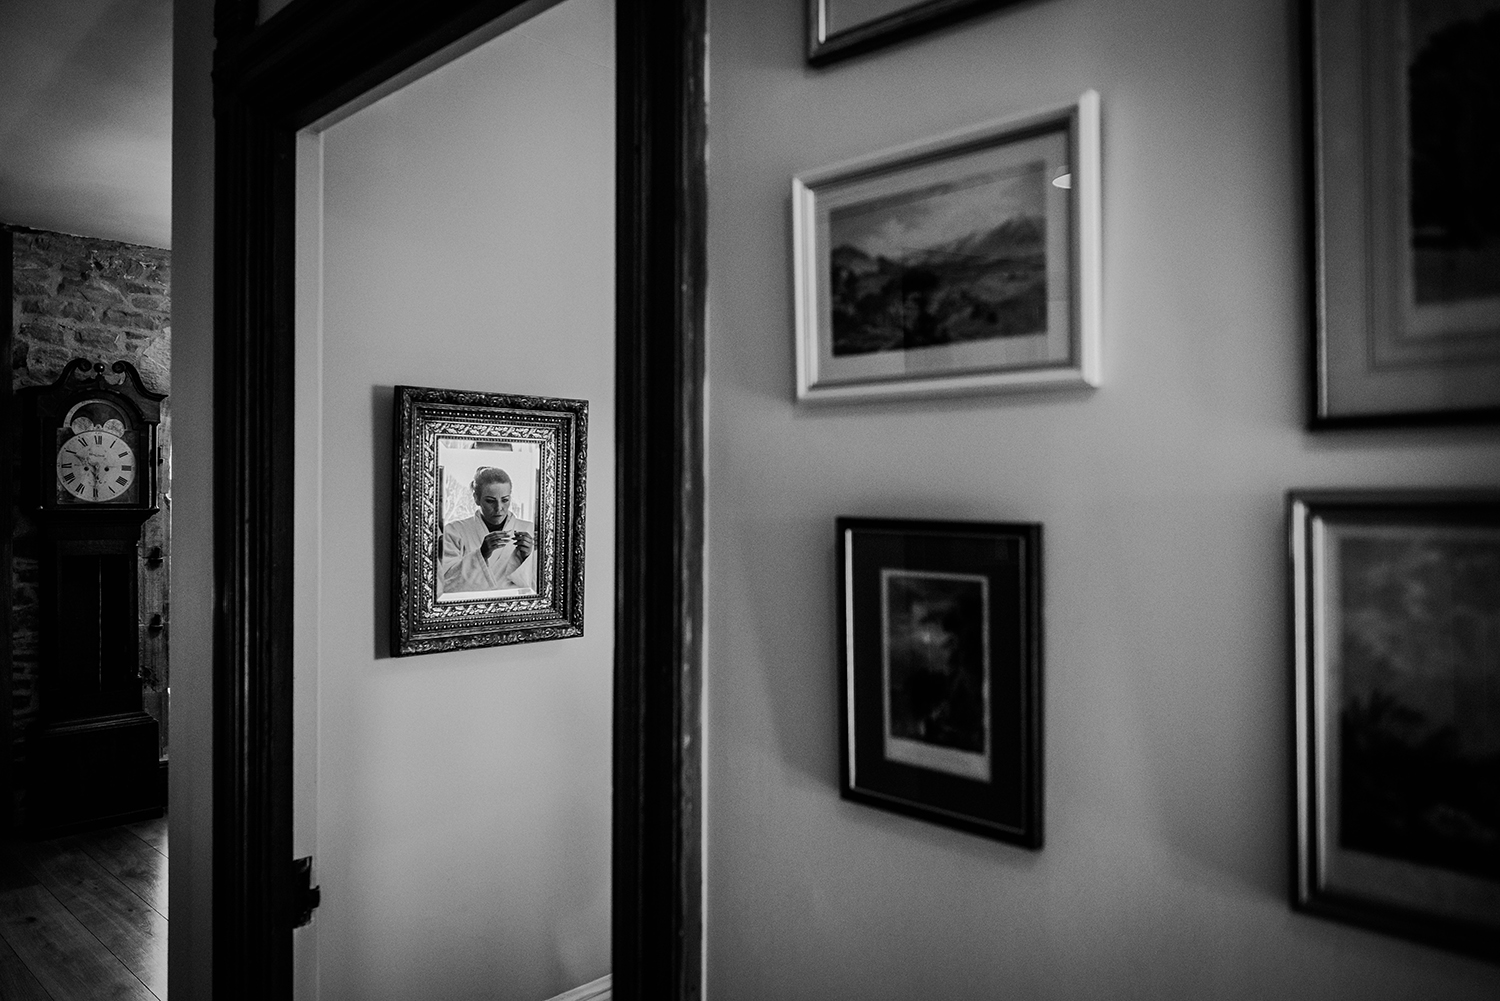 multiple frames on the wall, one has a reflection of a bridesmaid.